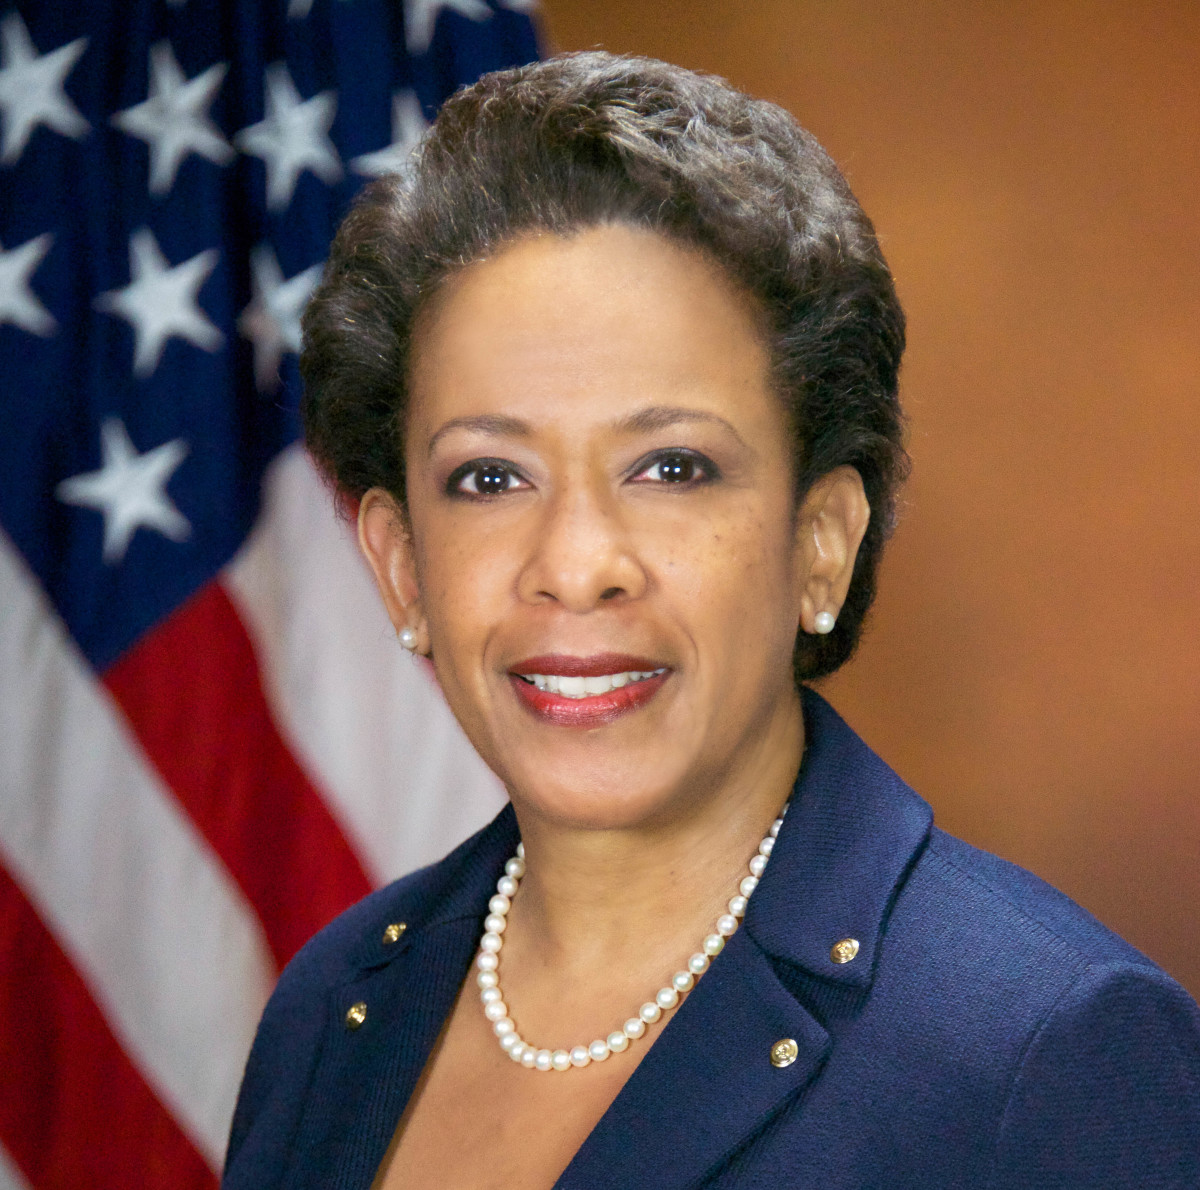 Loretta Lynch Photo Courtesy Department of Justice/Wikimedia Commons